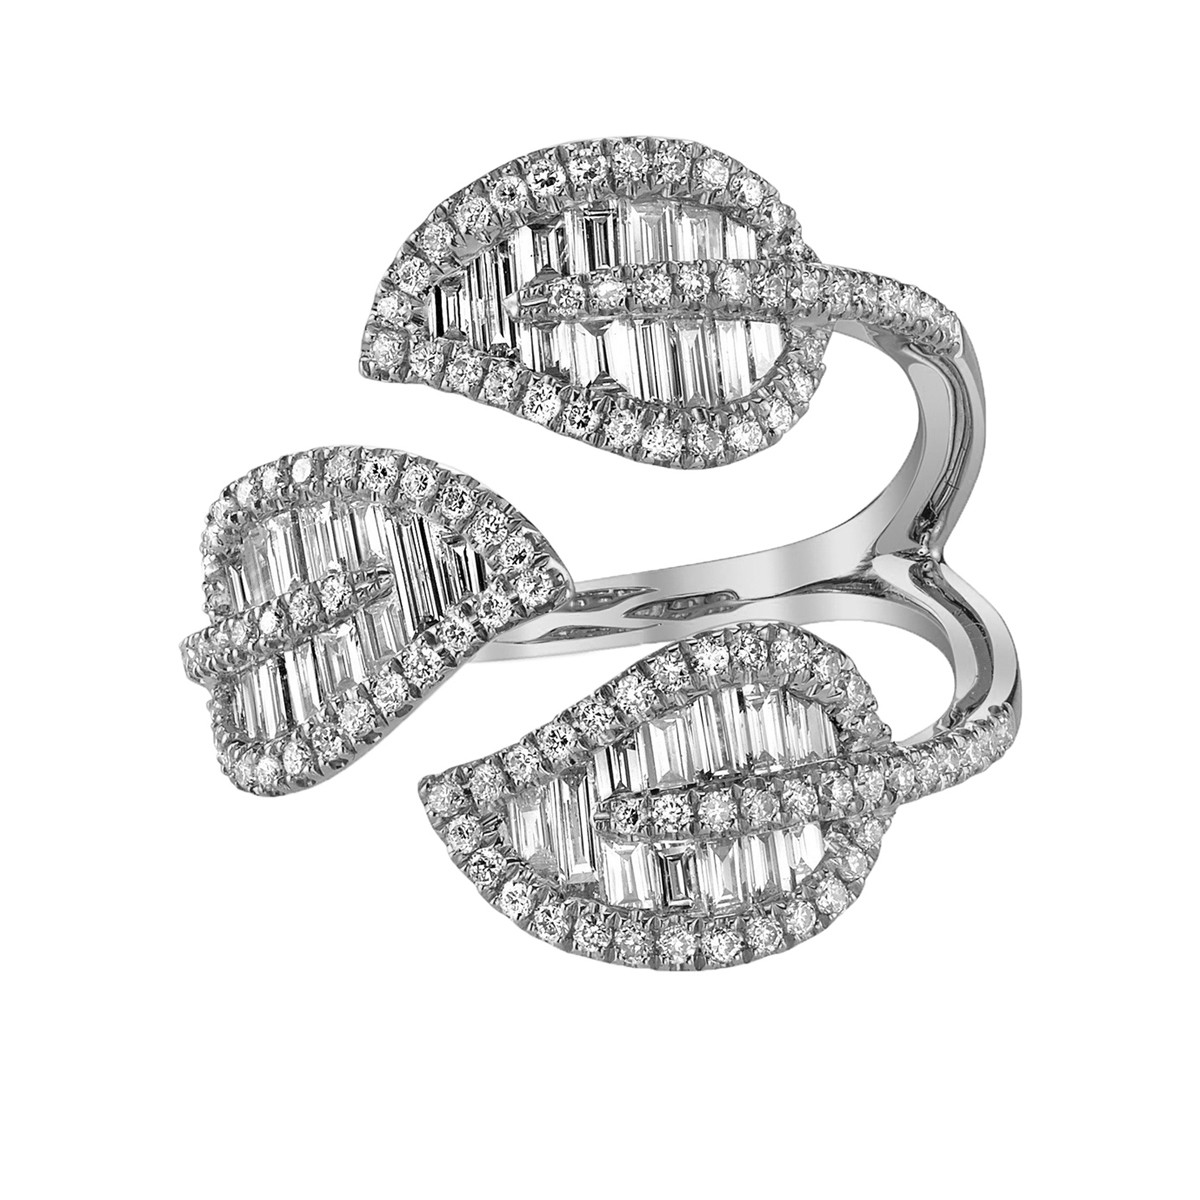 18k White Gold & Diamond 3-Leaf Wrap Ring